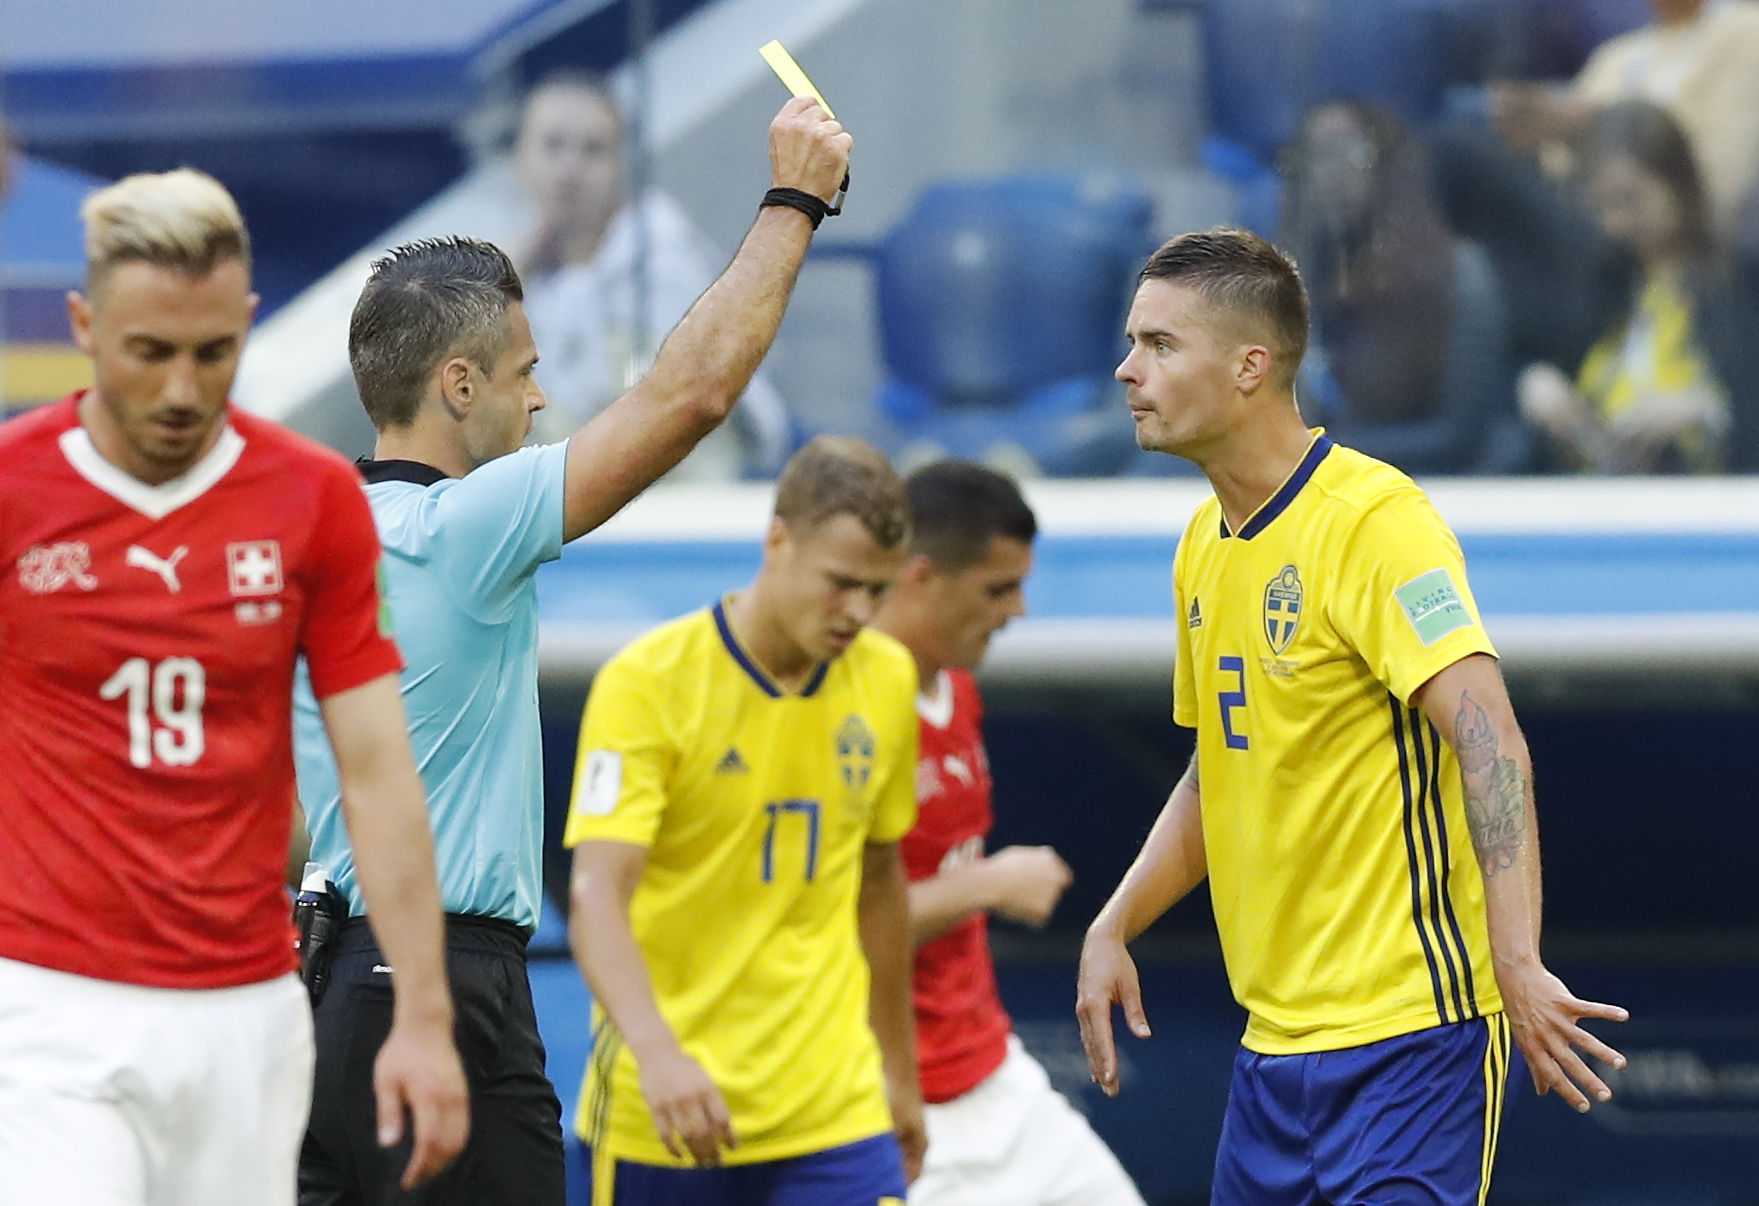 Referee Damir Skomina from Slovenia, second left, shows a yellow card to Sweden's Mikael Lustig during the round of 16 match between Switzerland and Sweden at the 2018 soccer World Cup in the St. Petersburg Stadium, in St. Petersburg, Russia, Tuesday, July 3, 2018. (AP Photo/Efrem Lukatsky)